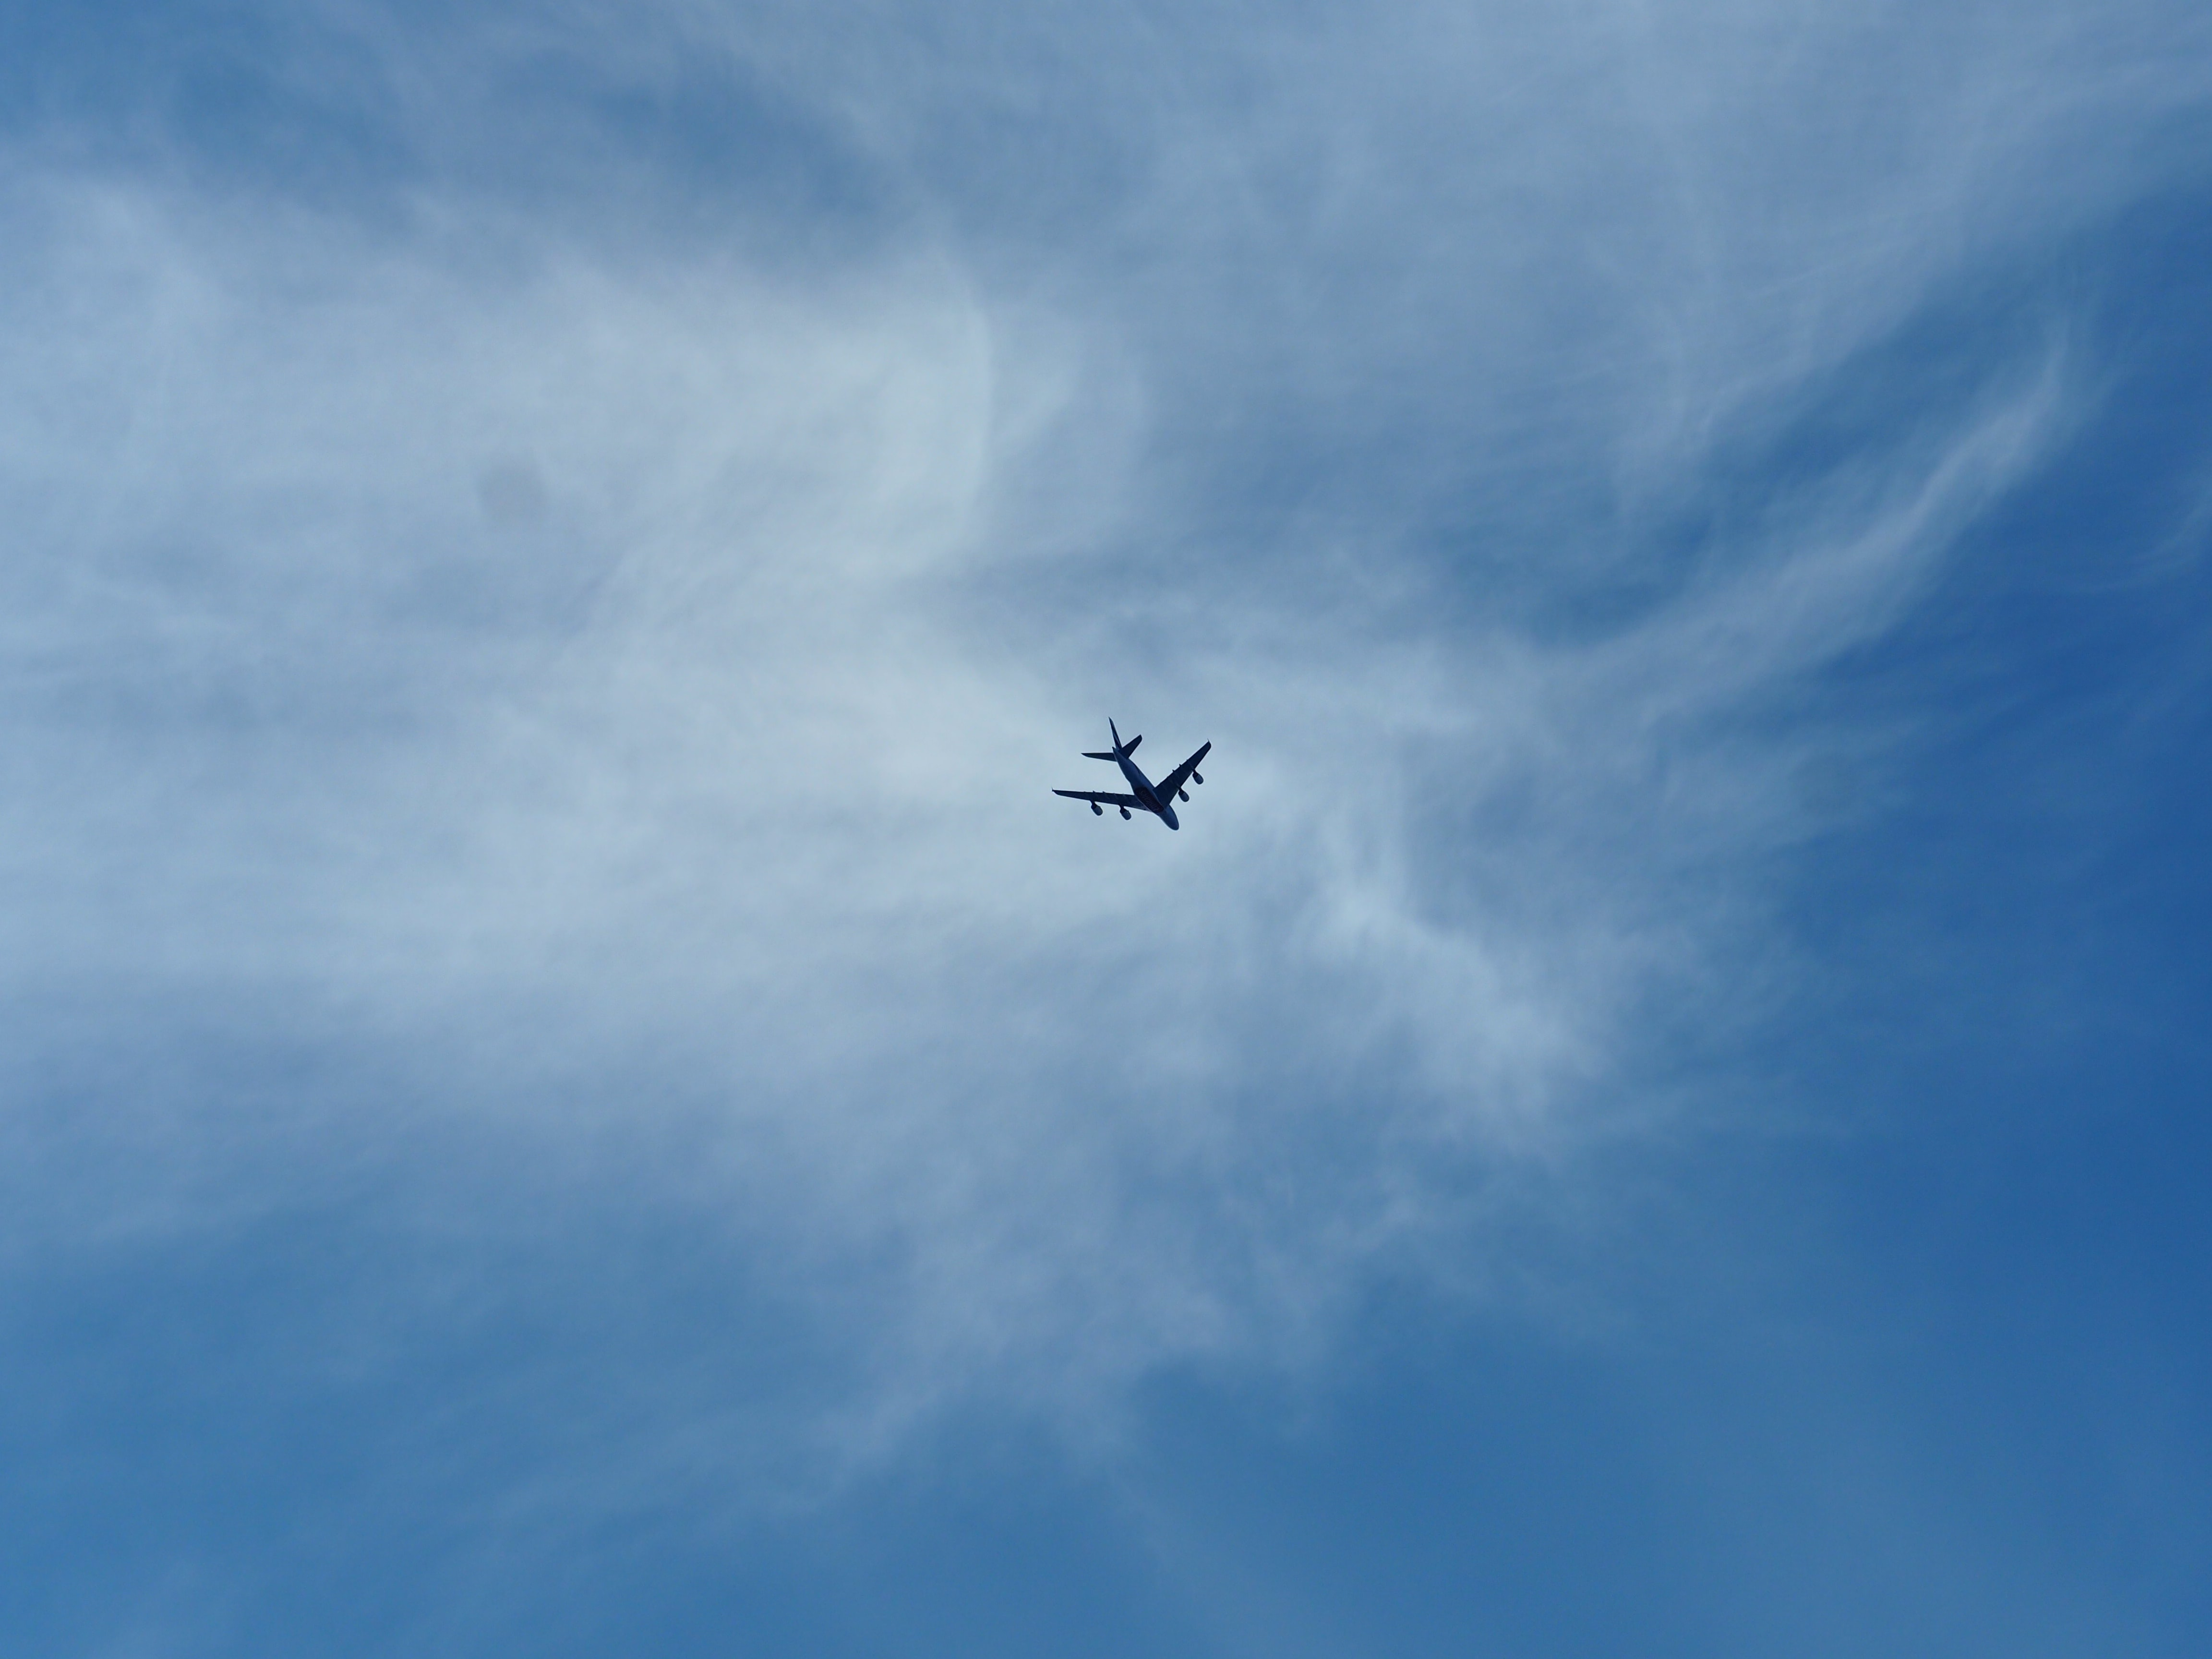 low angle of plane in sky